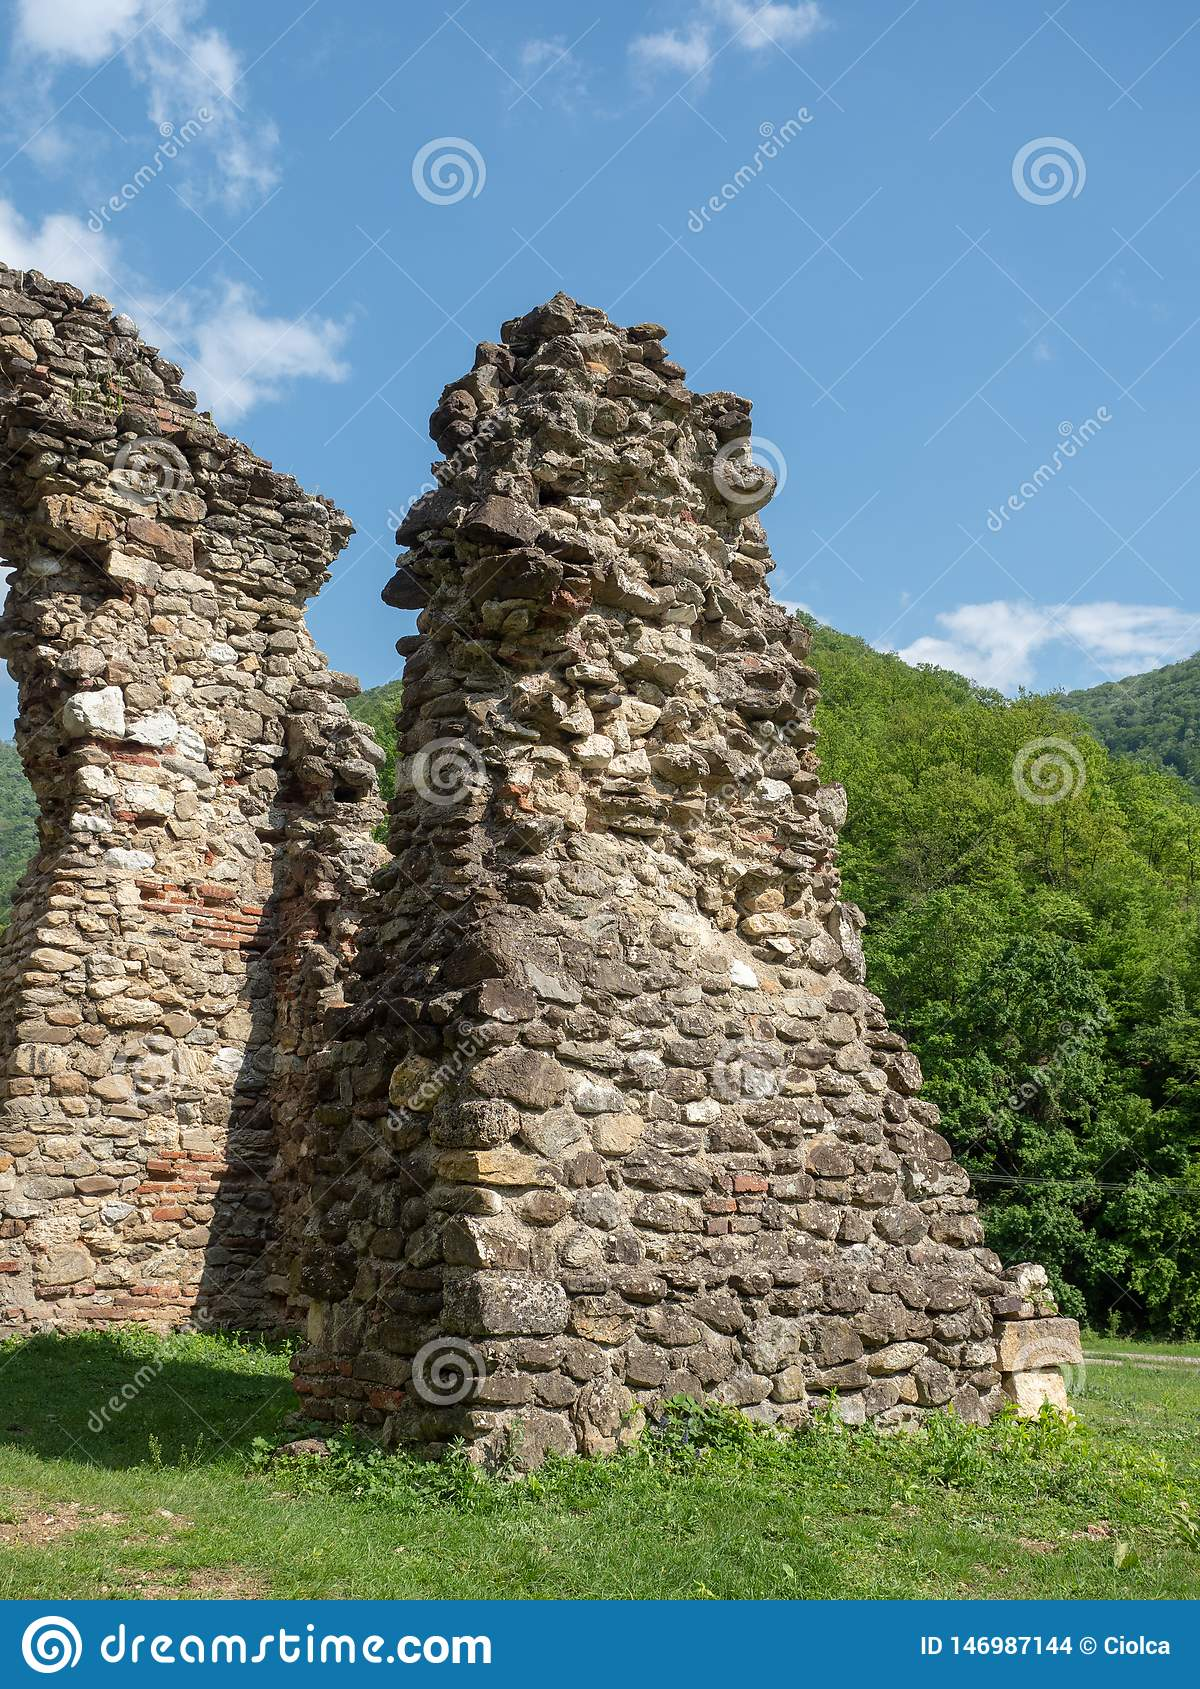 The old church at Vodita monastery, Romania